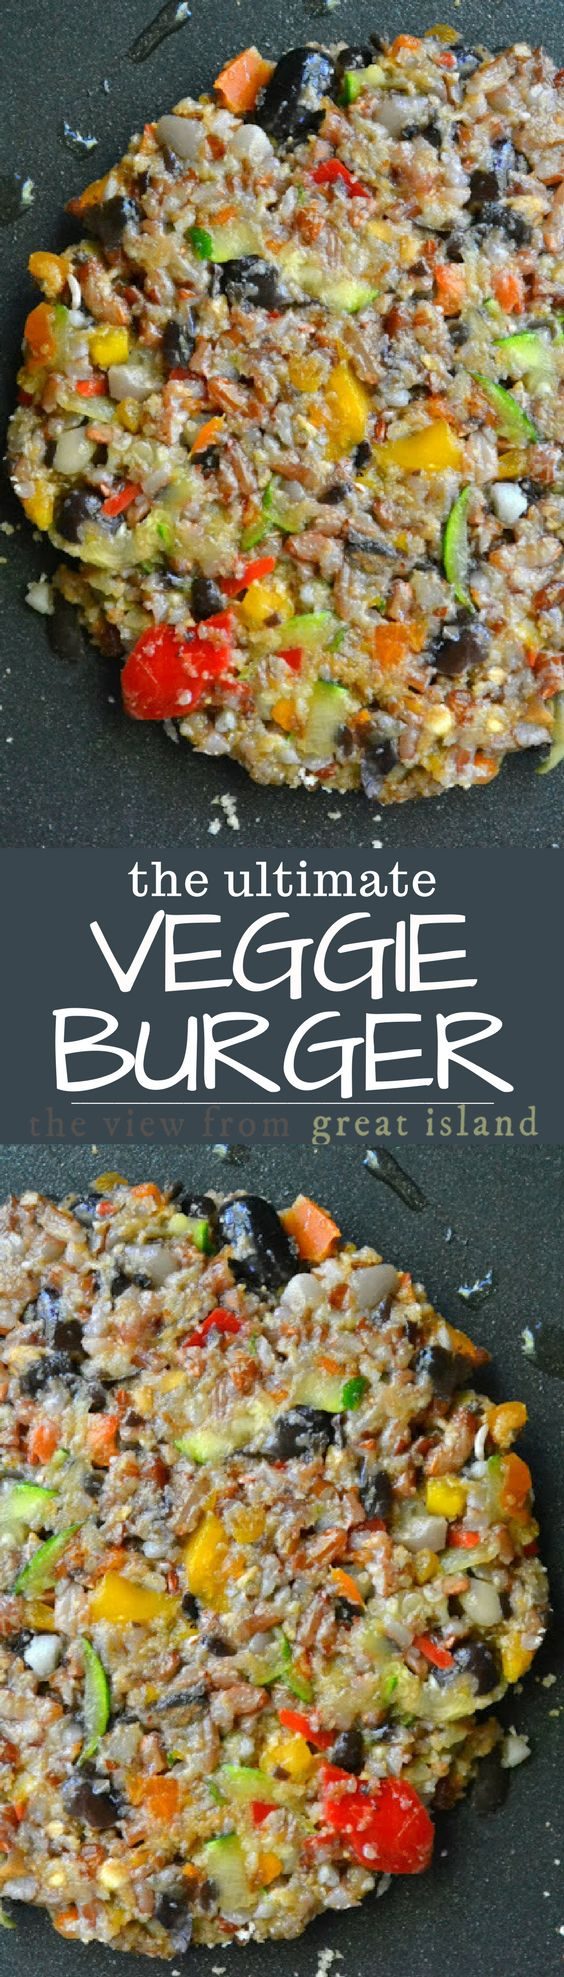 The Ultimate Veggie Burger ~ I'm not a fan of vegetarian food that pretends to be anything other than what it is. I love veggies, and I don't see why they should need to disguise themselves. But I make a small exception in the case of veggie burgers. The burger is the all American summer treat, and, to be honest, half of the fun is the bun and all the toppings. Switching out a healthy meatless burger just makes so much sense. You can make a big batch of these and freeze them for easy healt